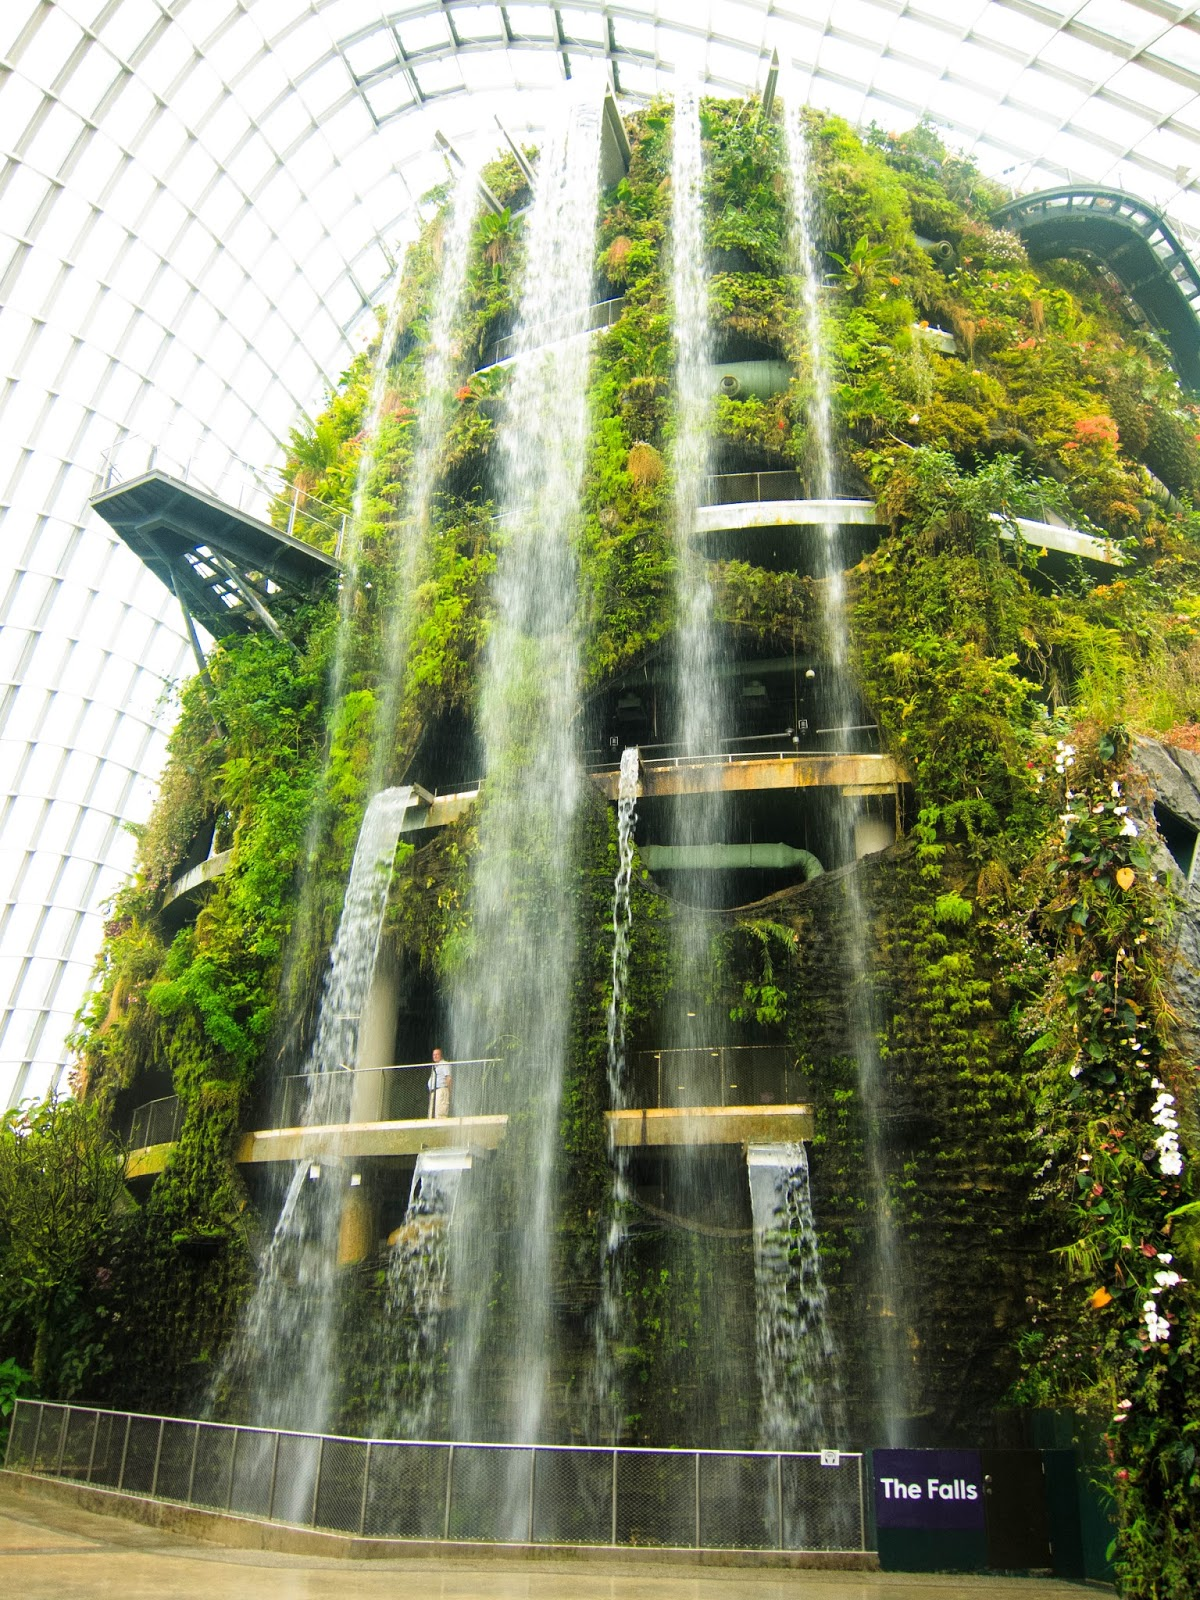 The Falls, World's tallest indoor waterfall, inside Cloud Forest, Gardens by the Bay in Singapore | Svelte Salivations - Travel